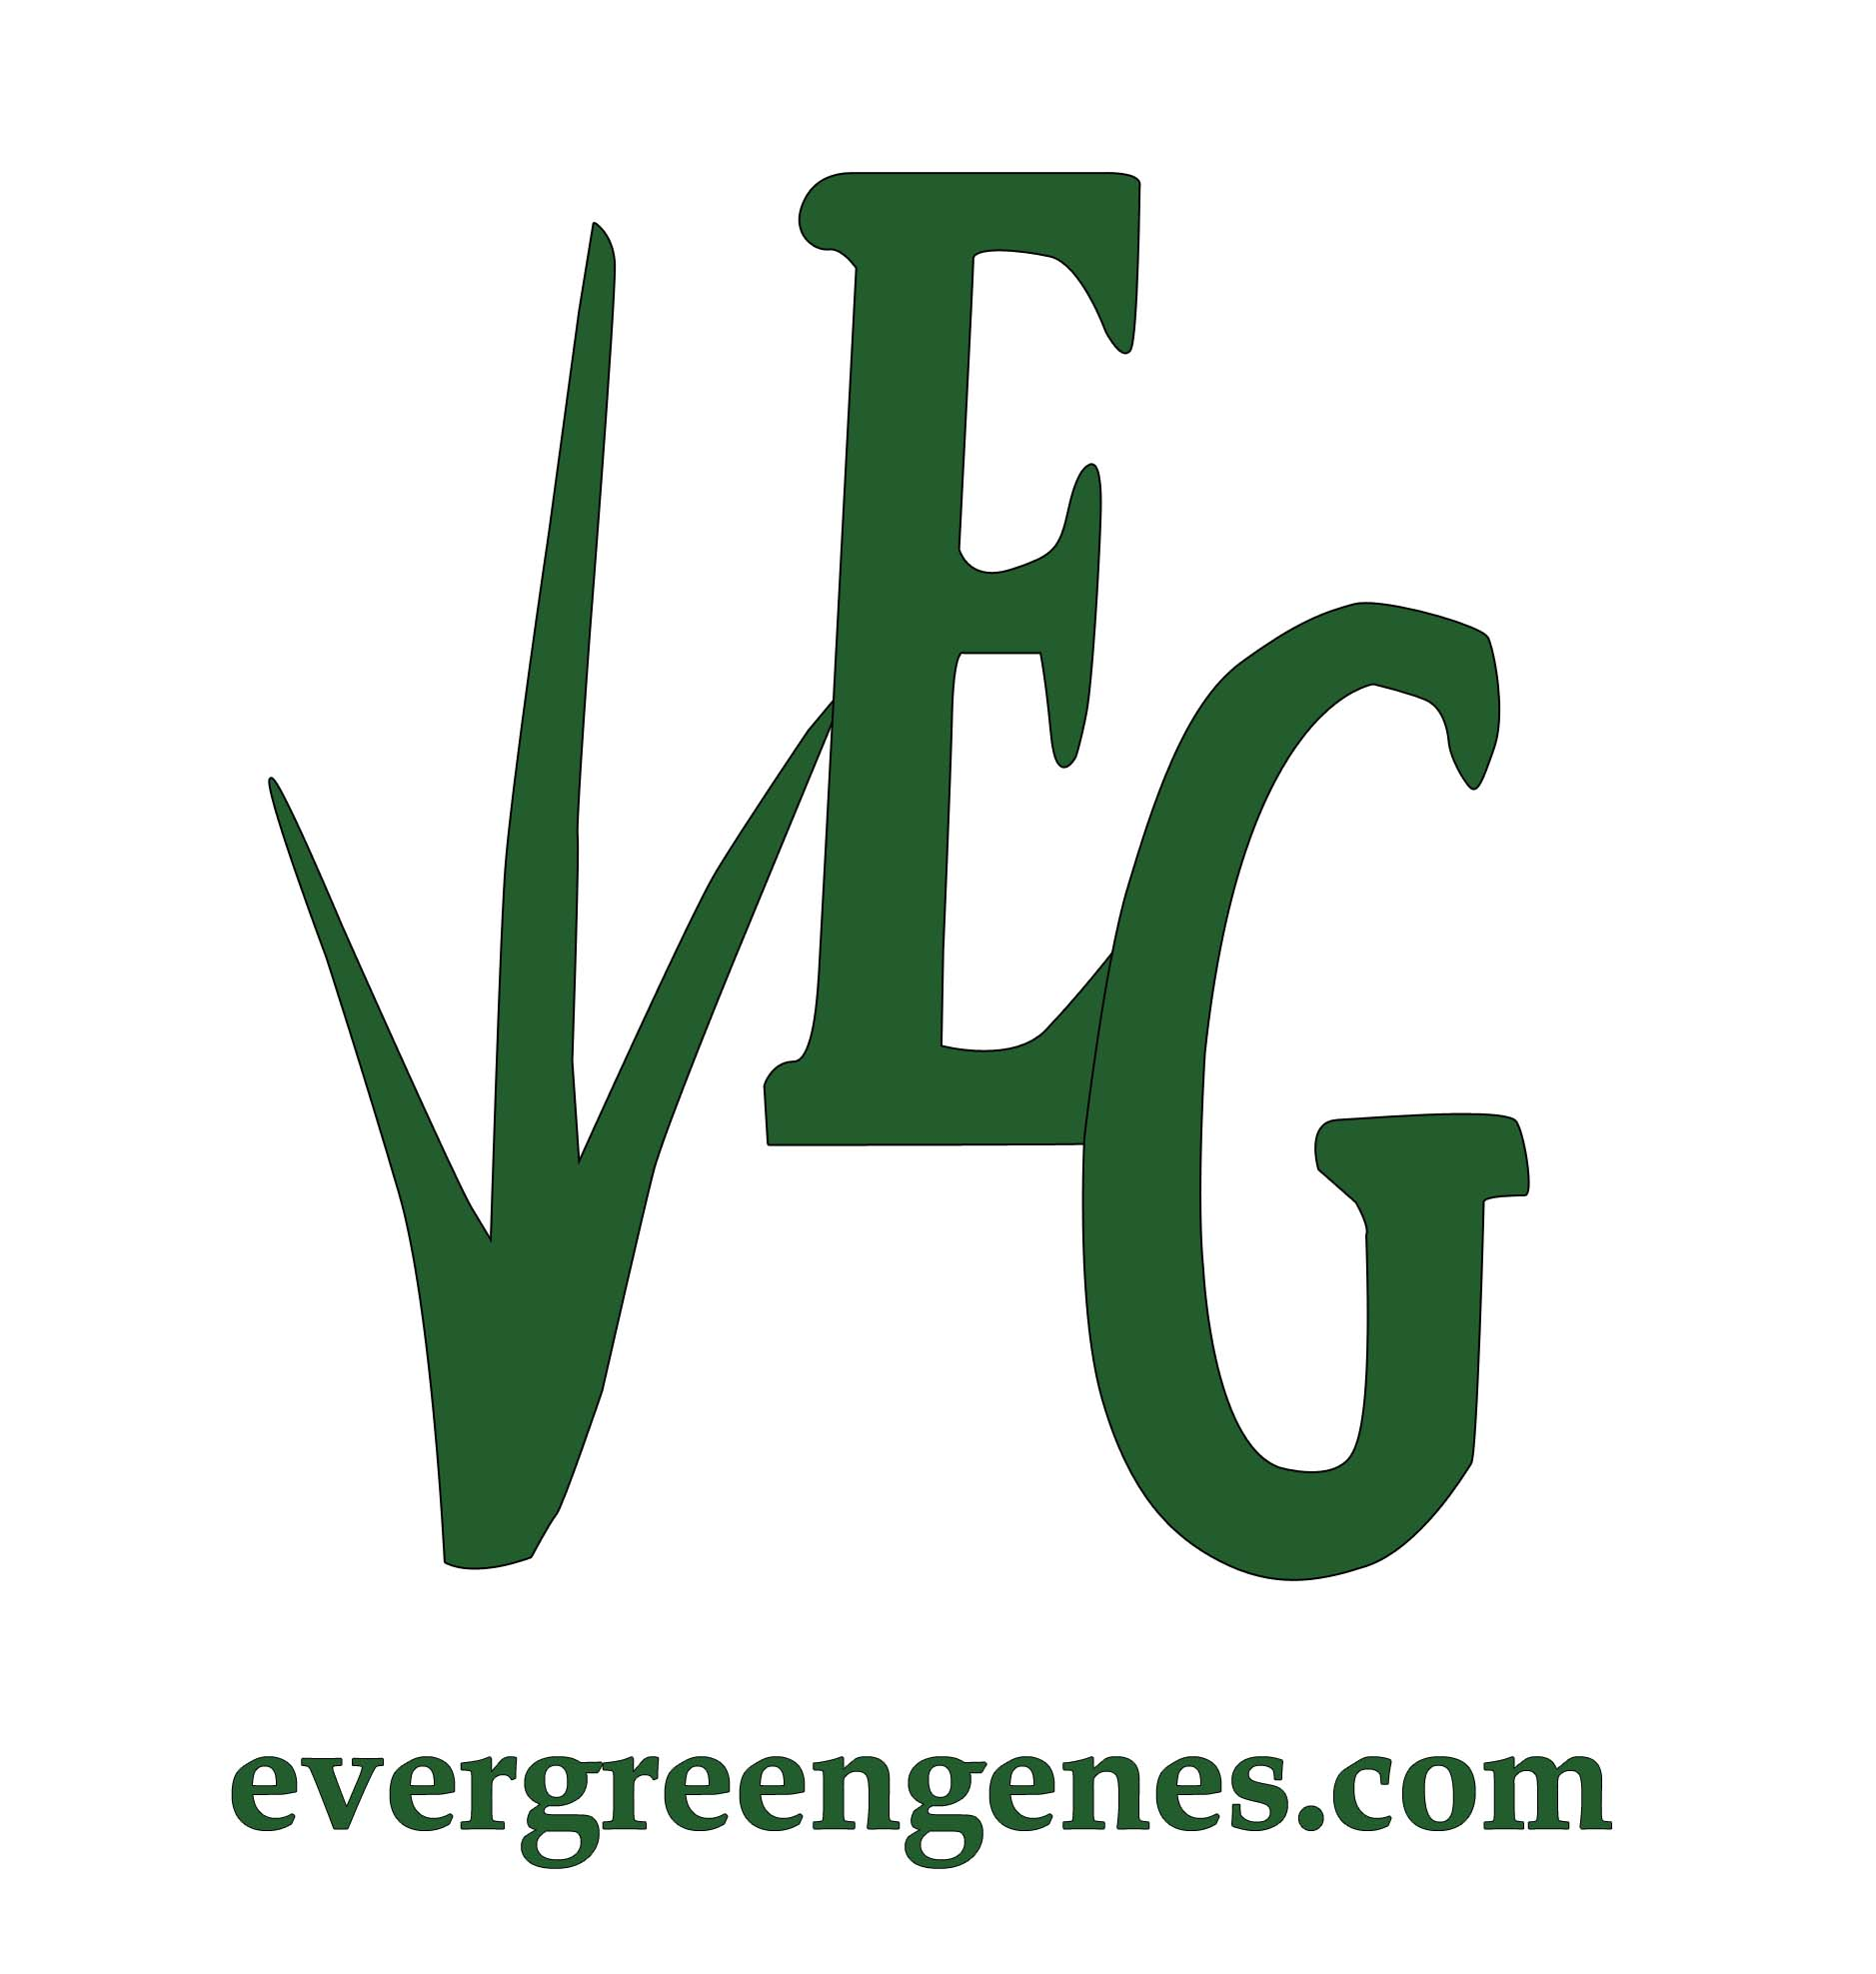 evergreen genes landscaping, garden center, landscape contractor